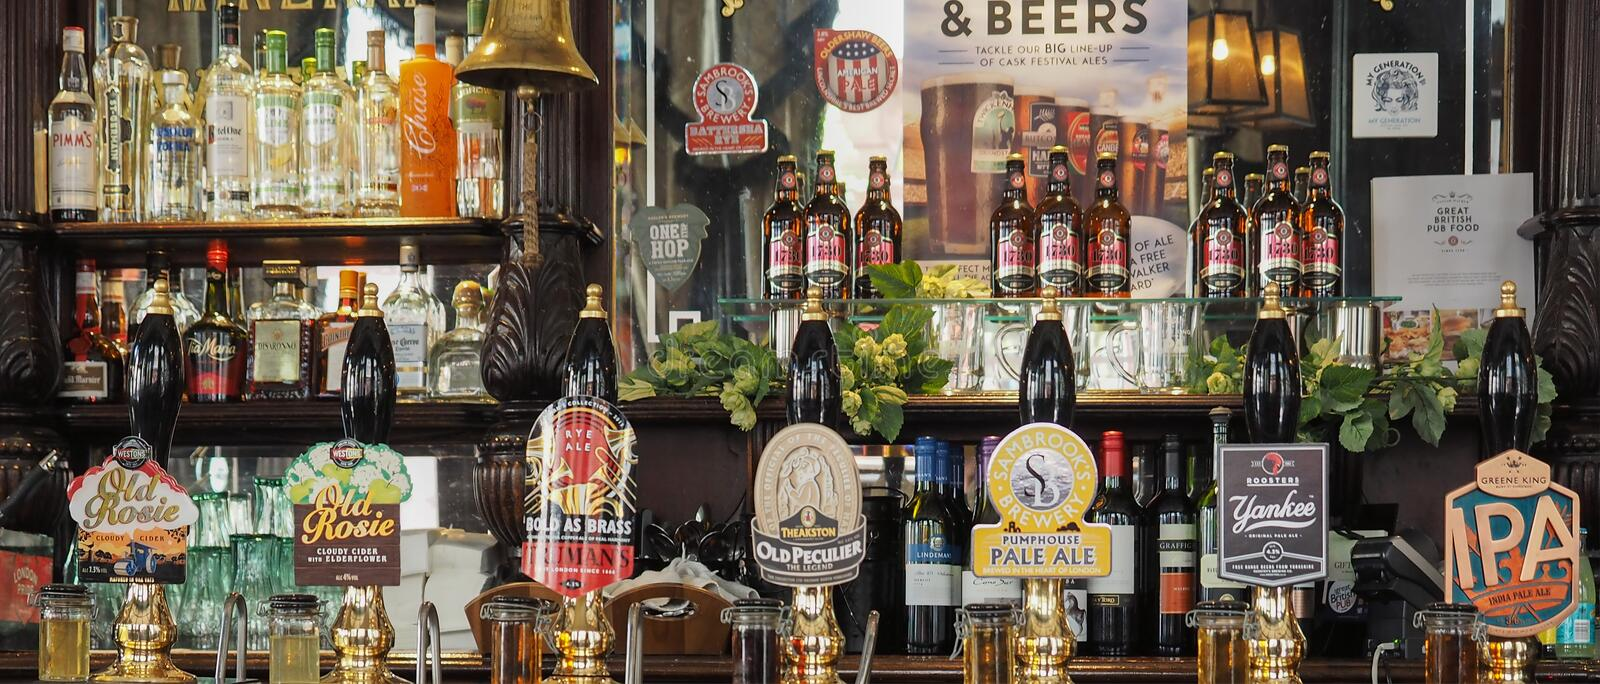 Cask beers in London stock images